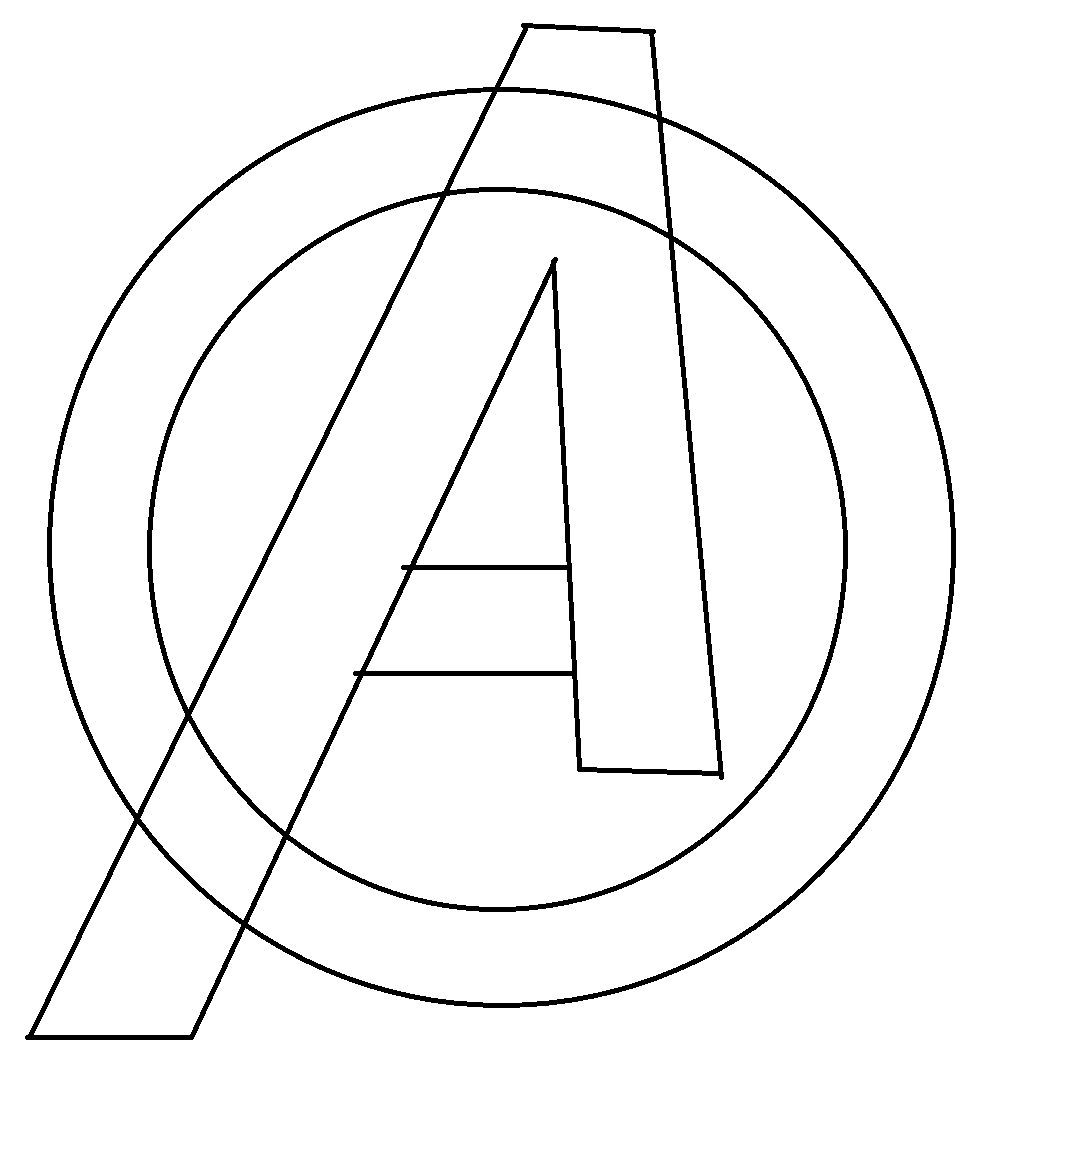 Avengers Symbol Coloring Pages : Pin os vingadores logo on pinterest